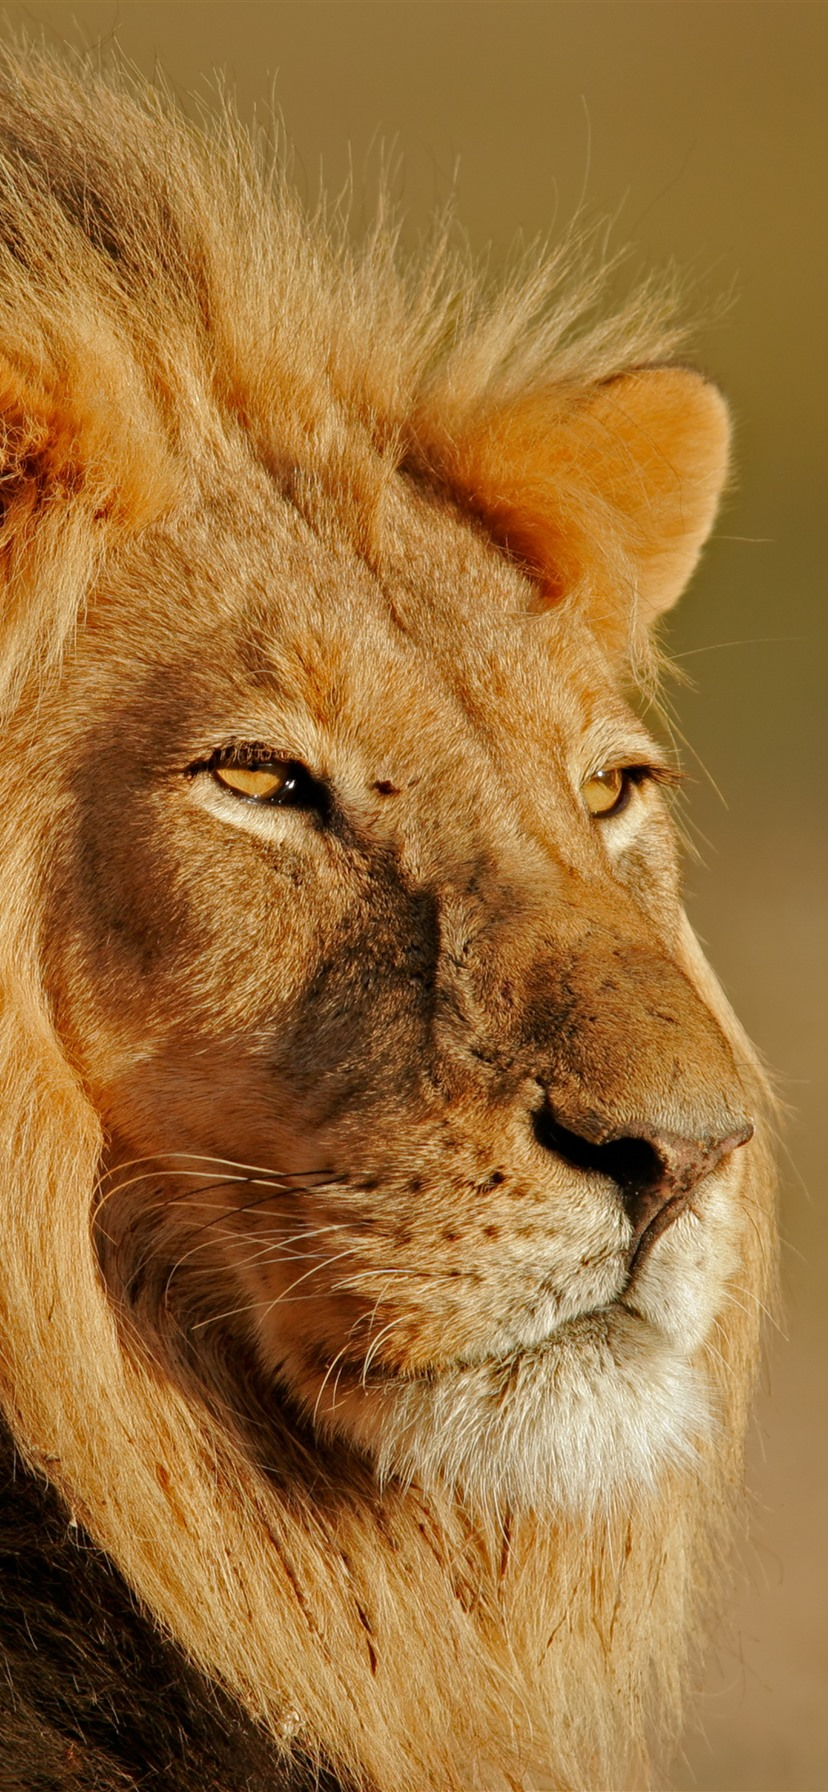 Lion Look Wildlife Sunshine 1242x2688 Iphone 11 Pro Xs Max Wallpaper Background Picture Image